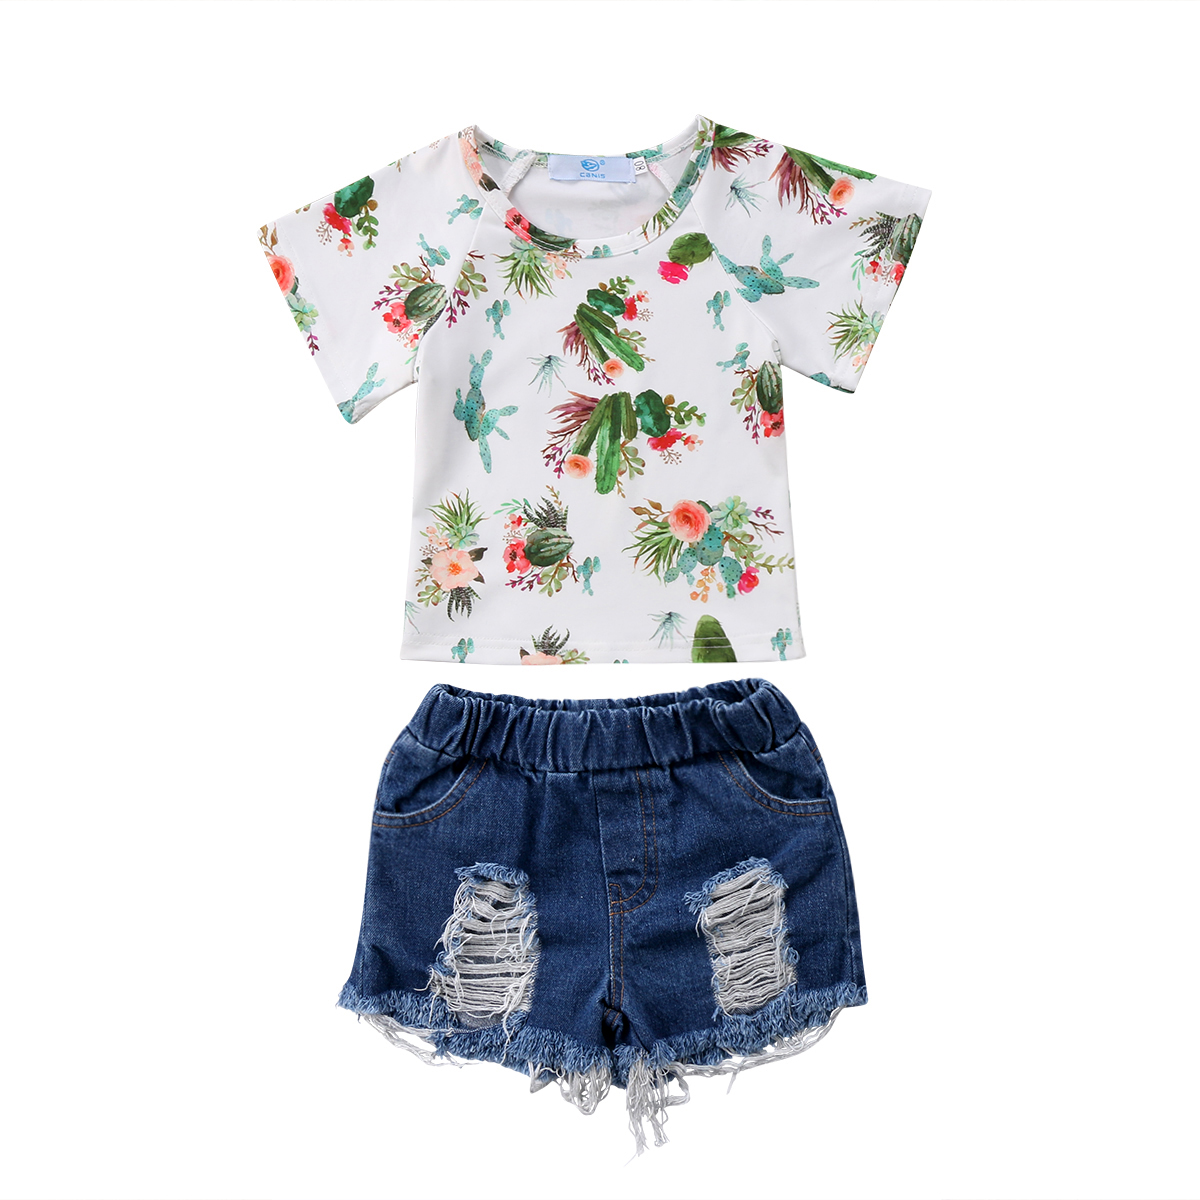 Mother & Kids Denim Shorts Pants Outfit Casual Clothes Set Last Style Fashion 2pcs Toddler Kids Baby Girl Short Sleeve T-shirt Tops